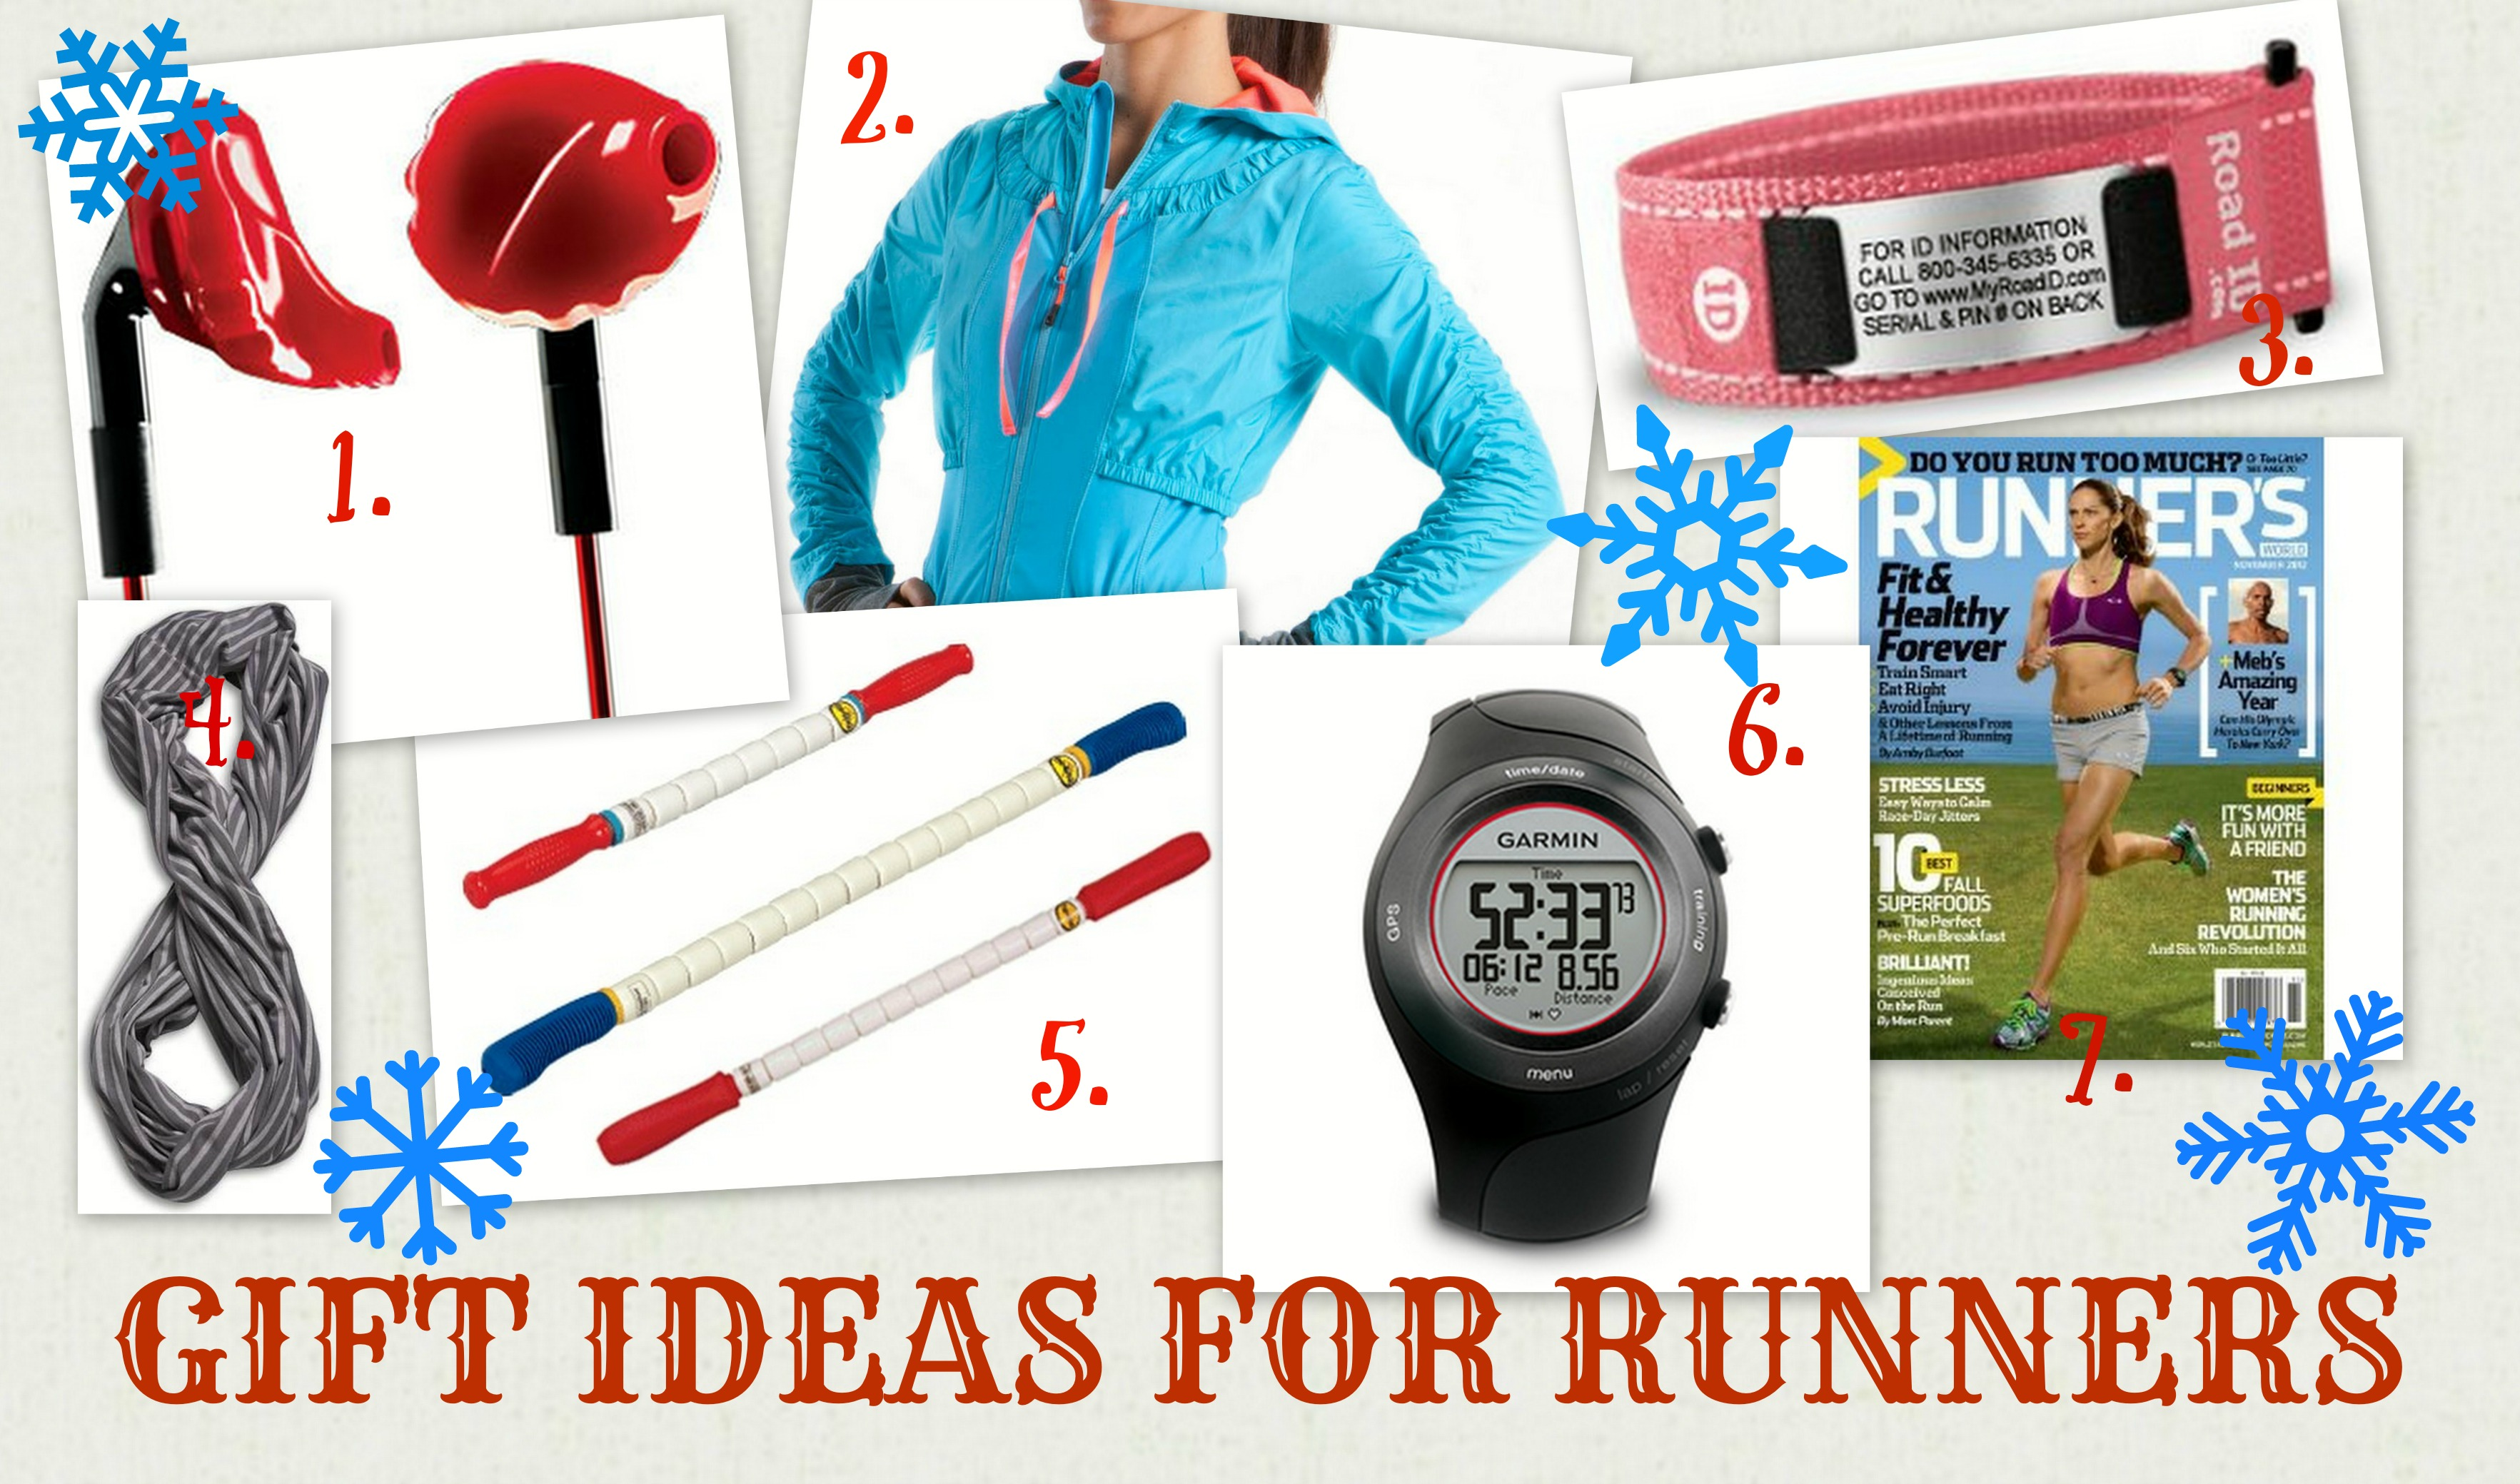 Baby Gift Ideas For Runners : Gift ideas for runners frolic through life